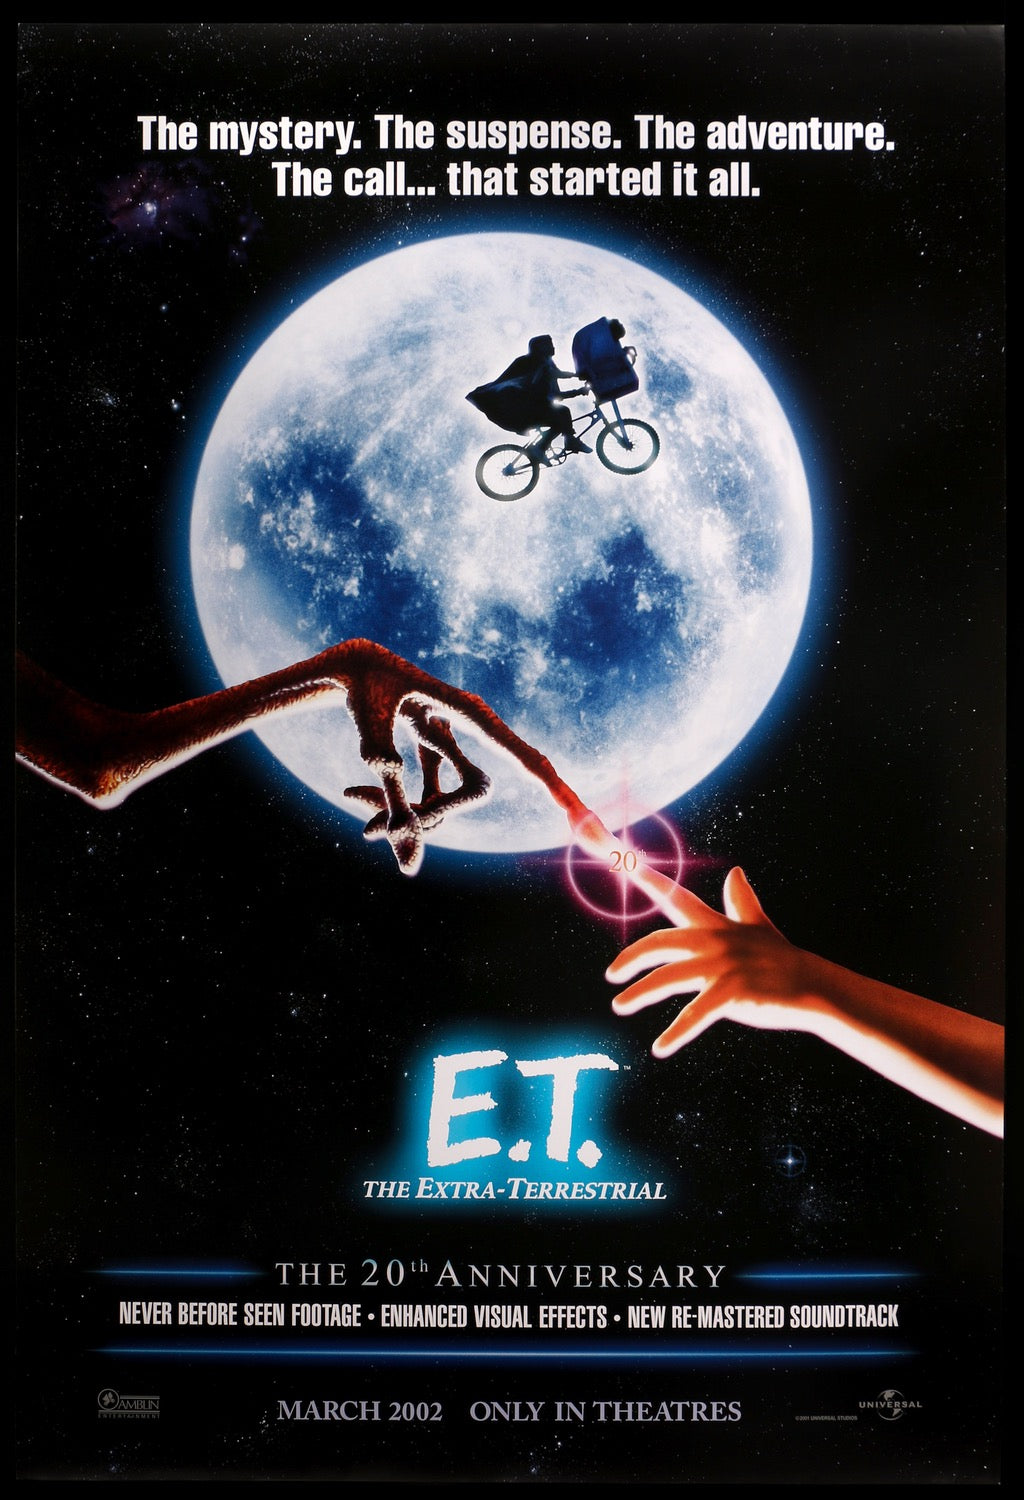 E T The Extra Terrestrial 1982 R2002 One Sheet Movie Poster Original Film Art Vintage Movie Posters